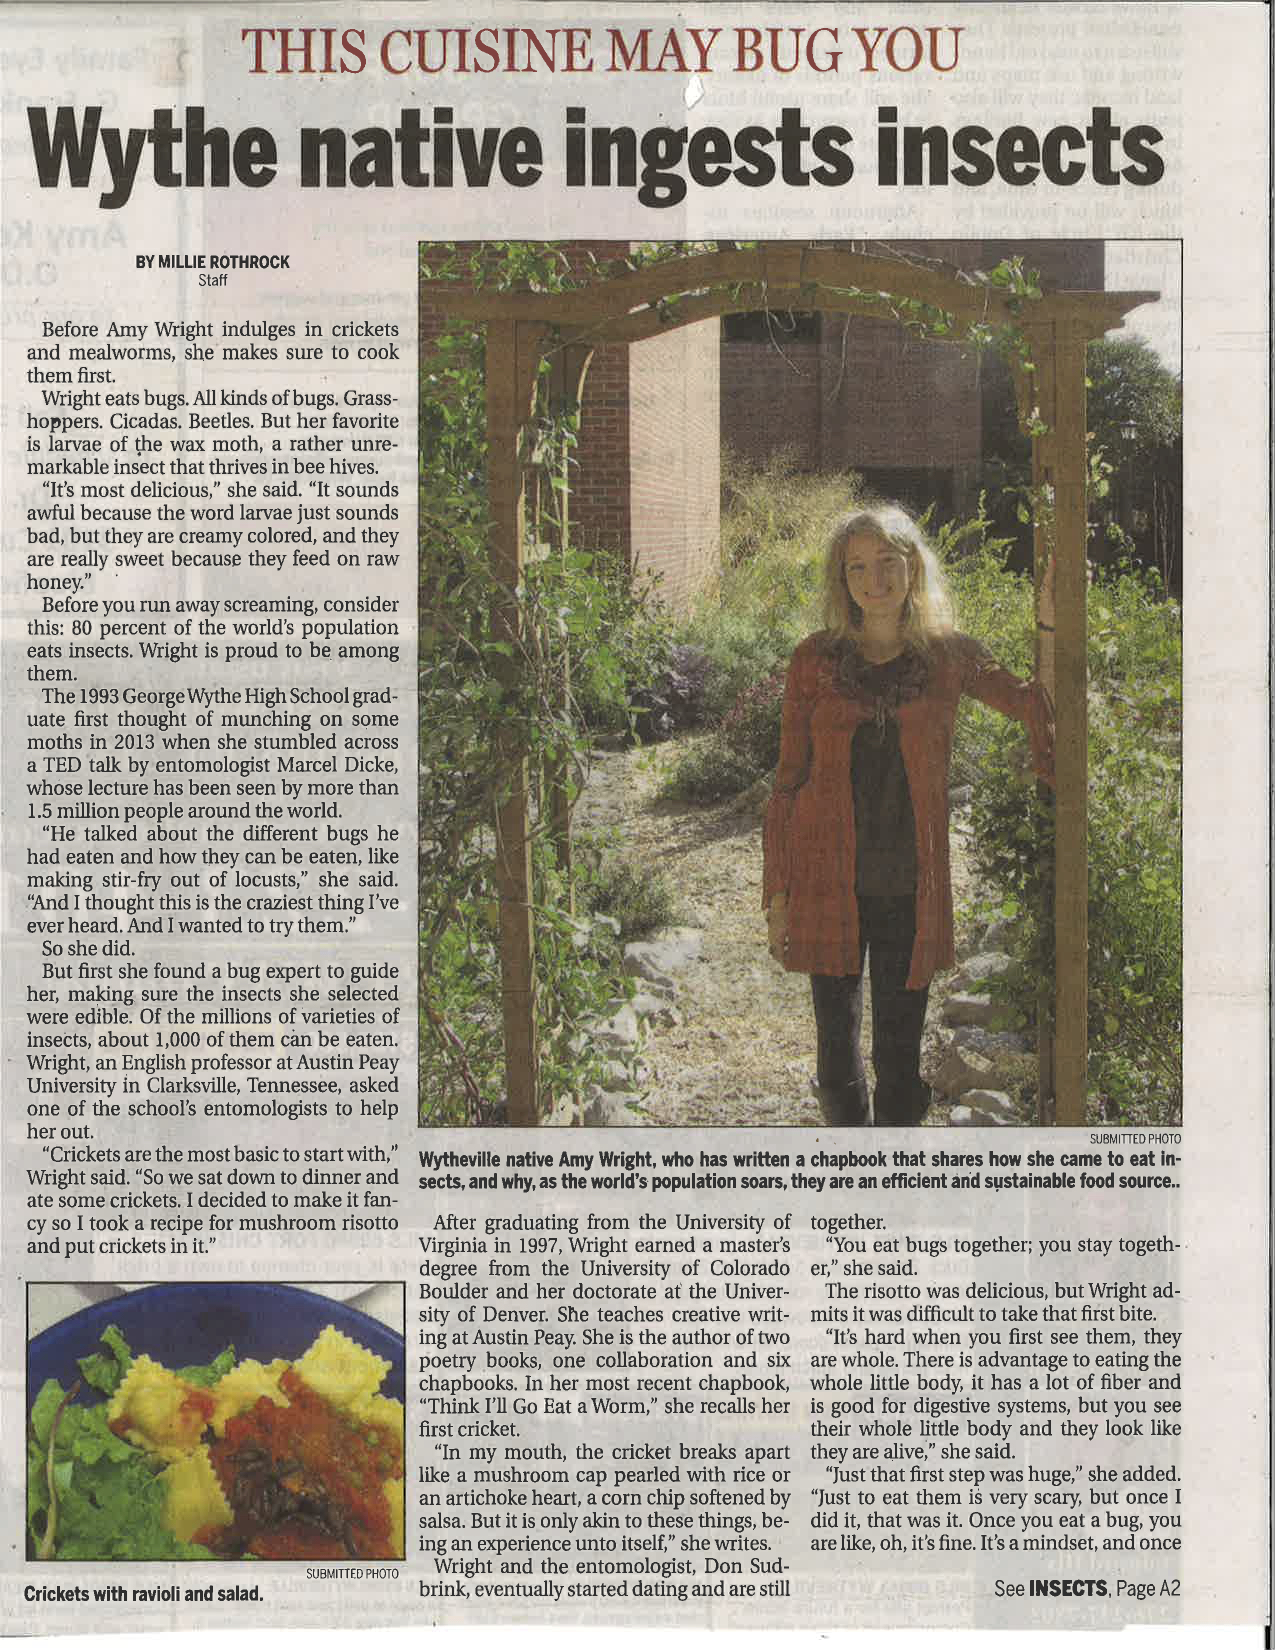 SWVA article April 2019 image.jpg